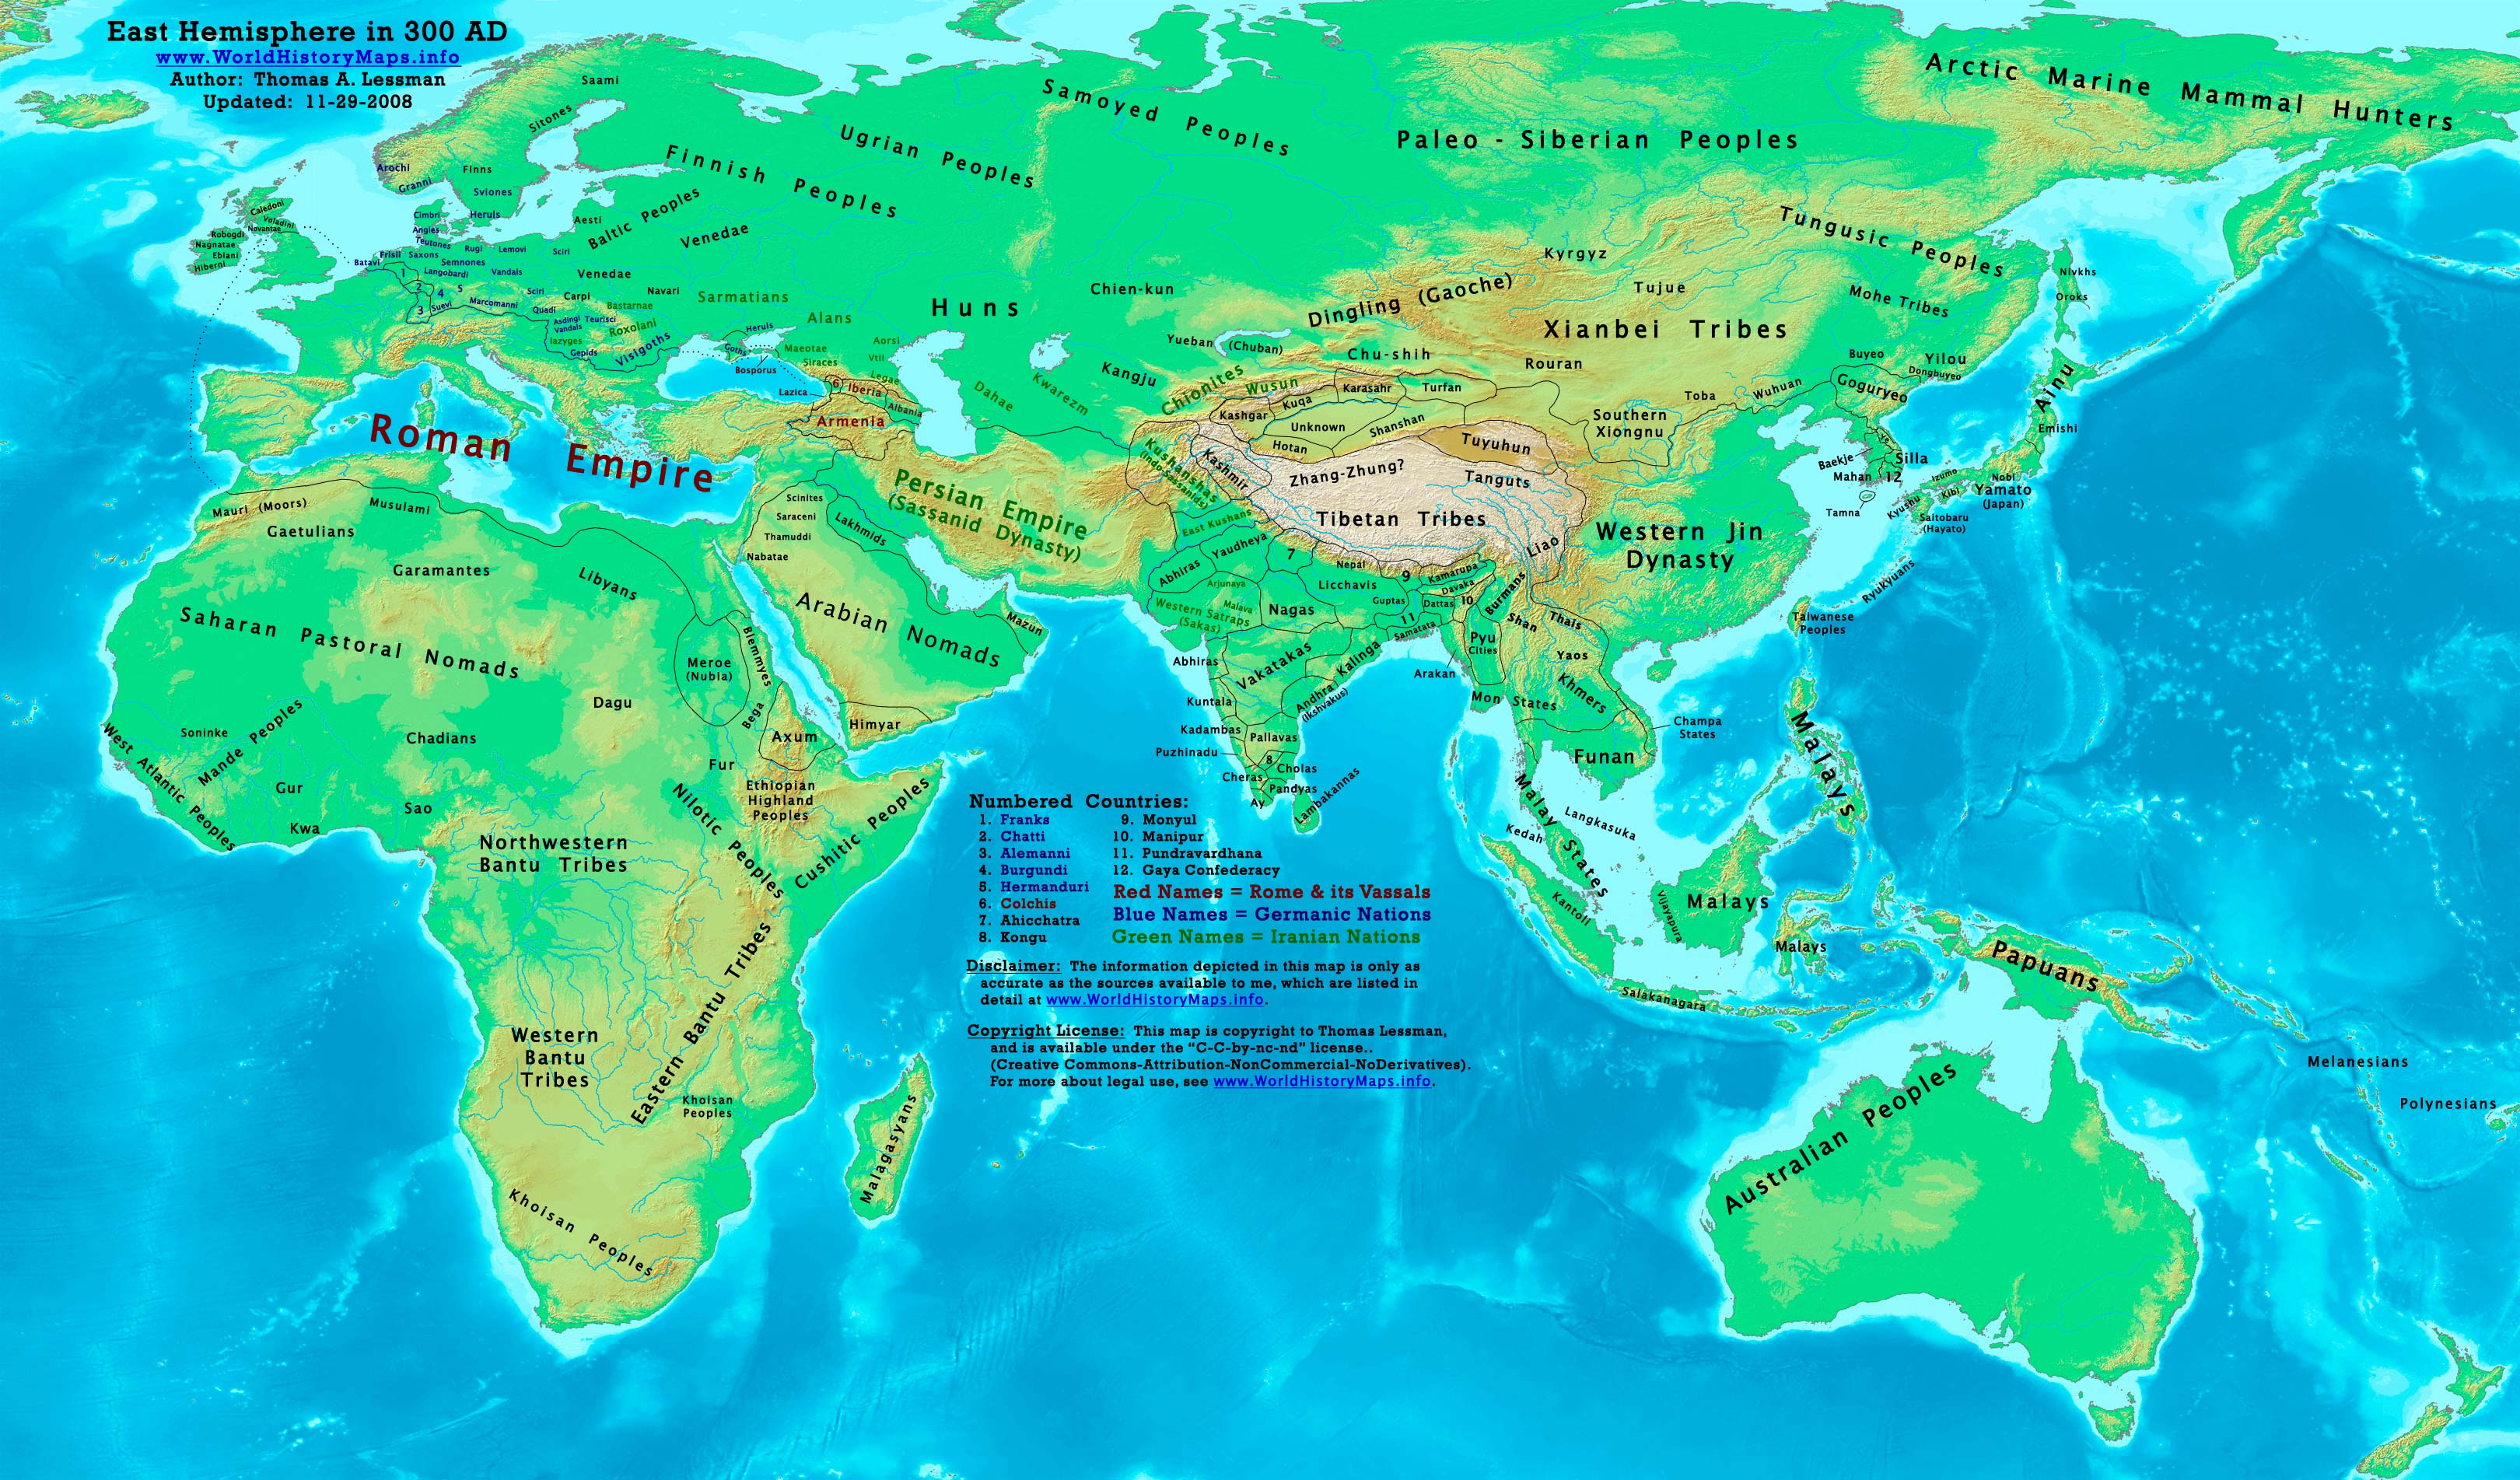 World History Maps by Thomas Lessman